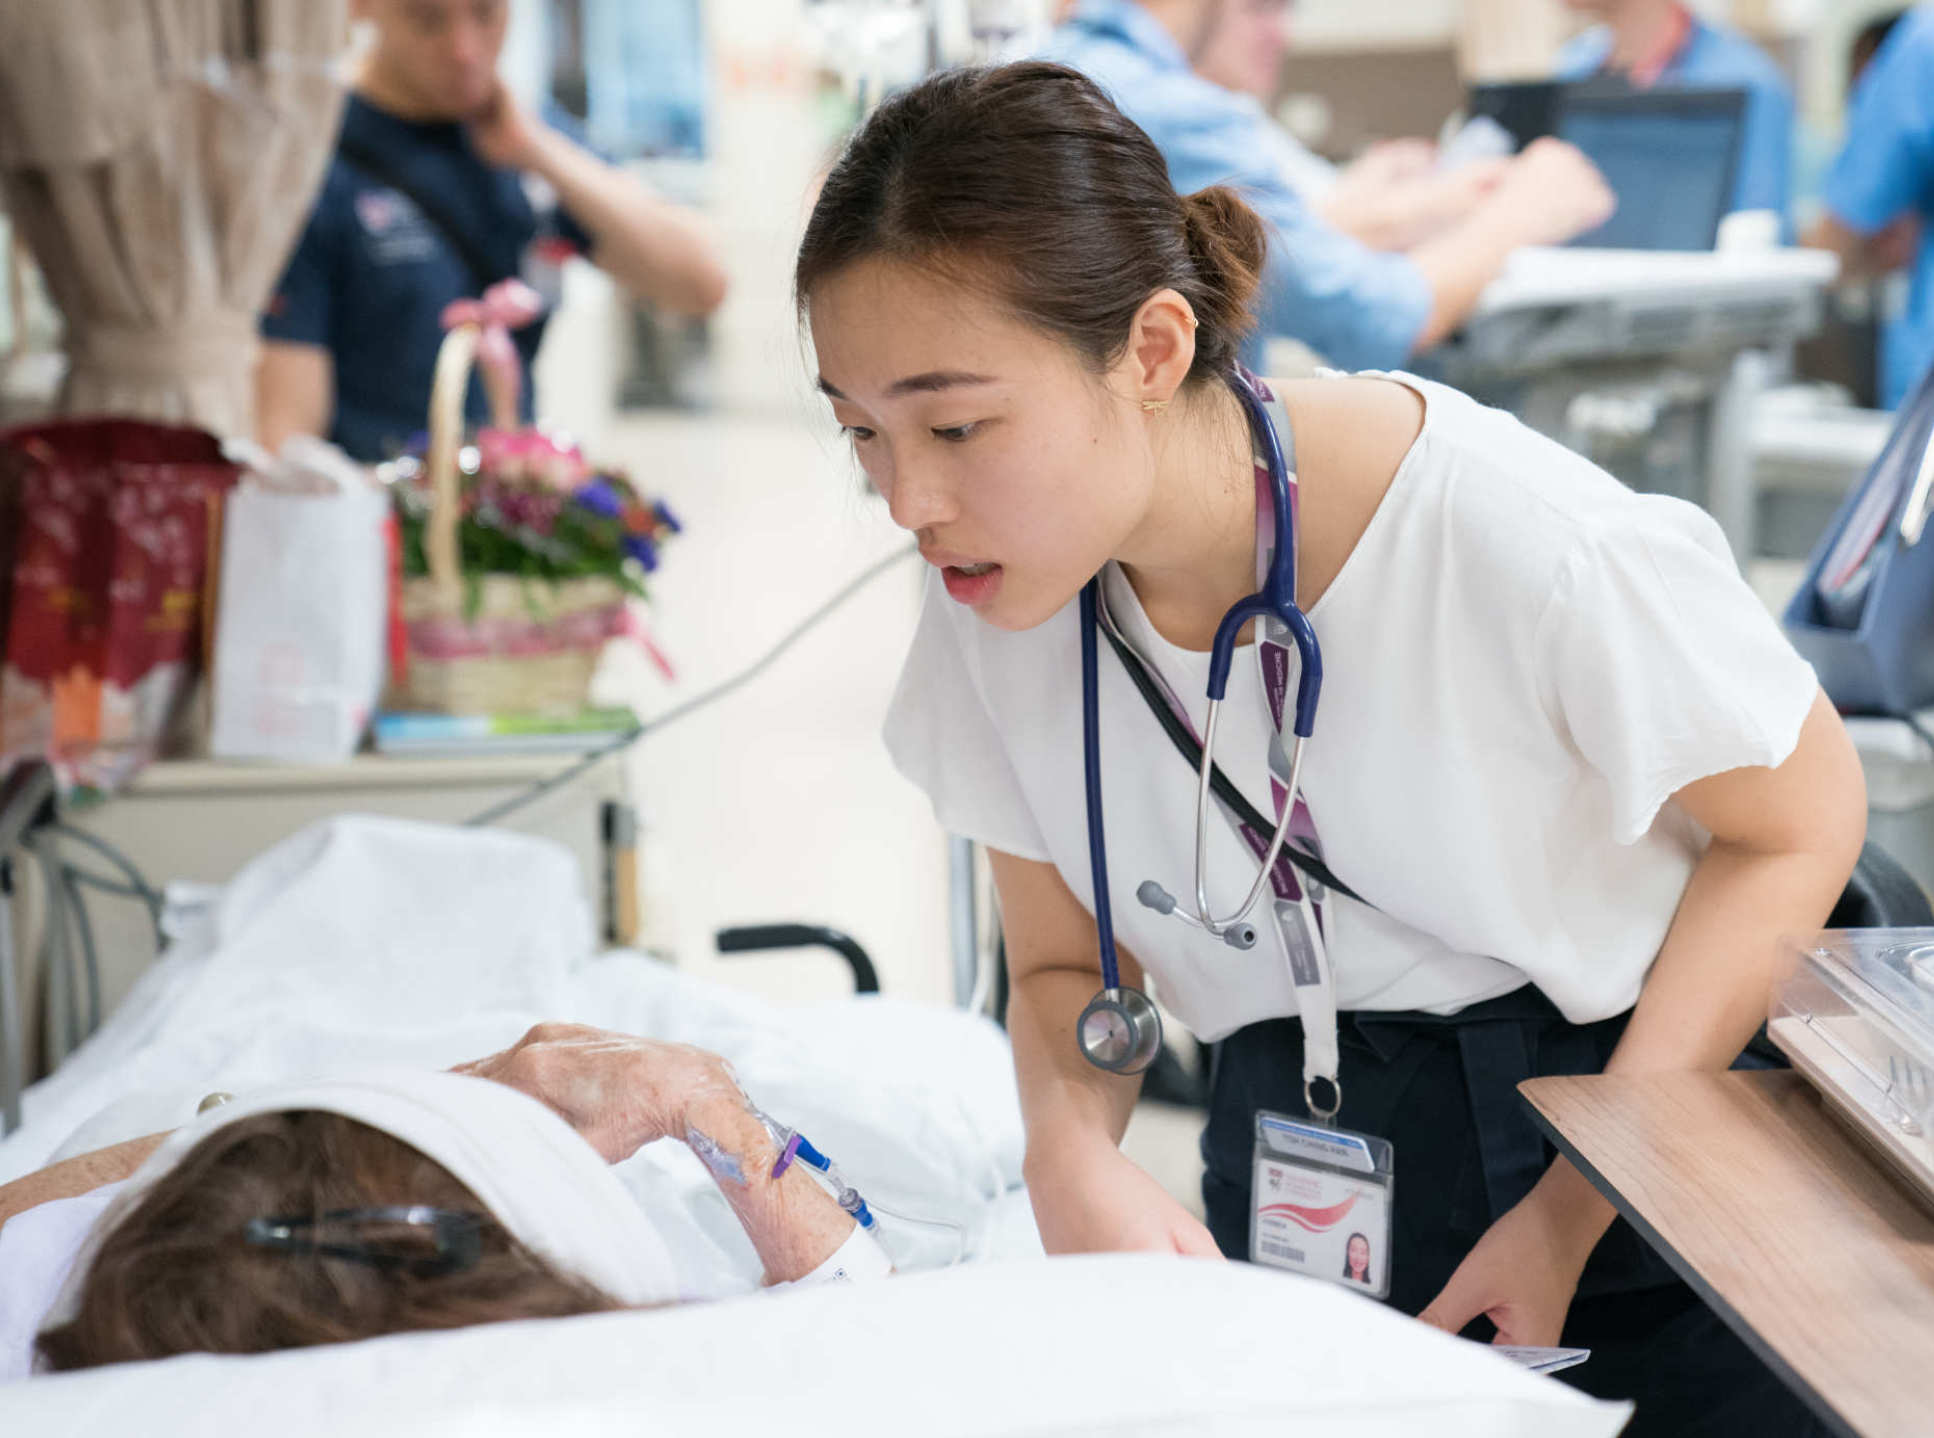 LKCMedicine graduate Ching Han checks on a patient